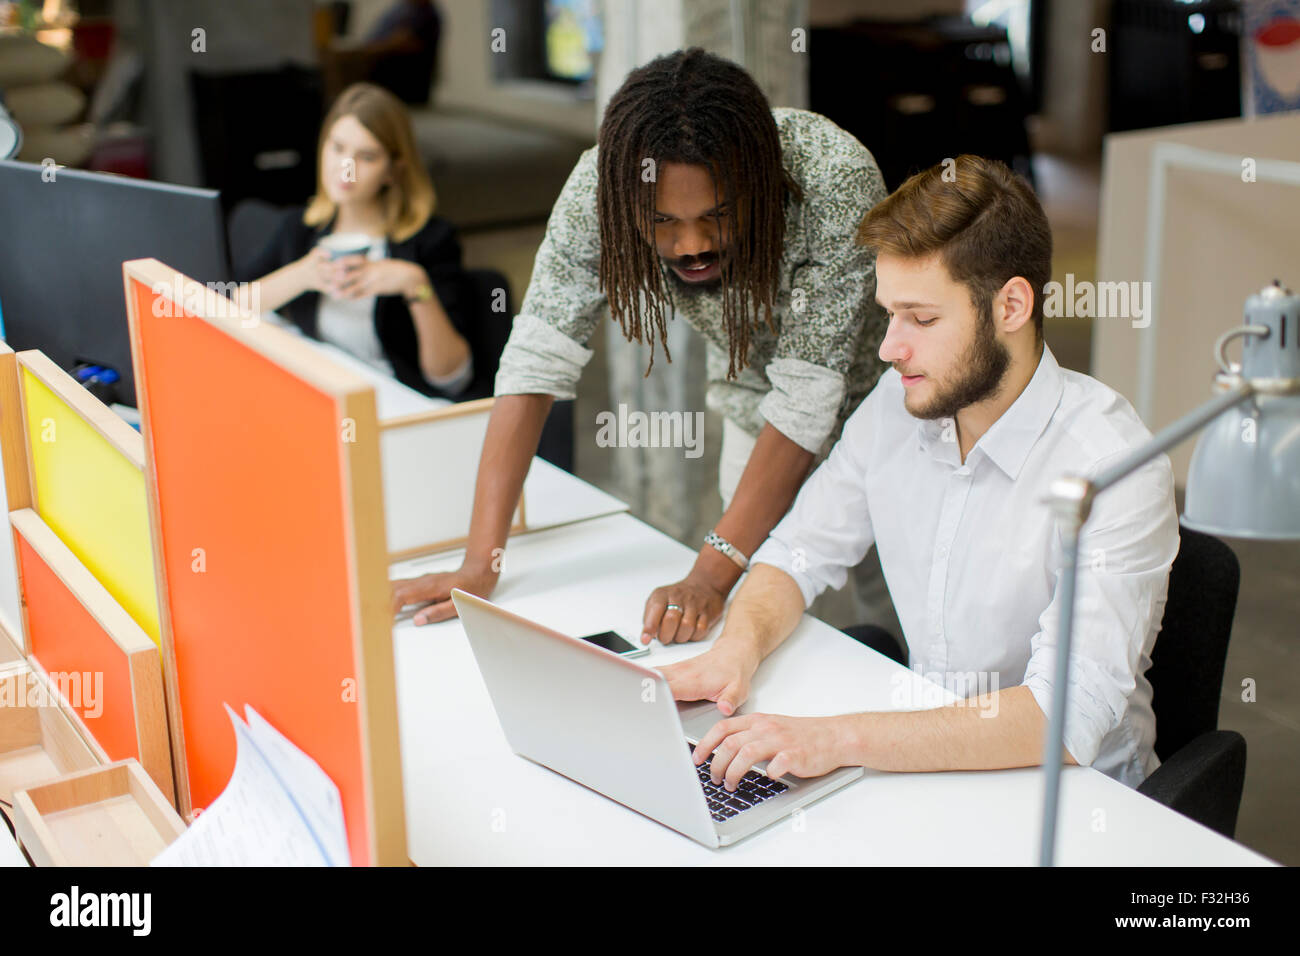 Young people in the office - Stock Image